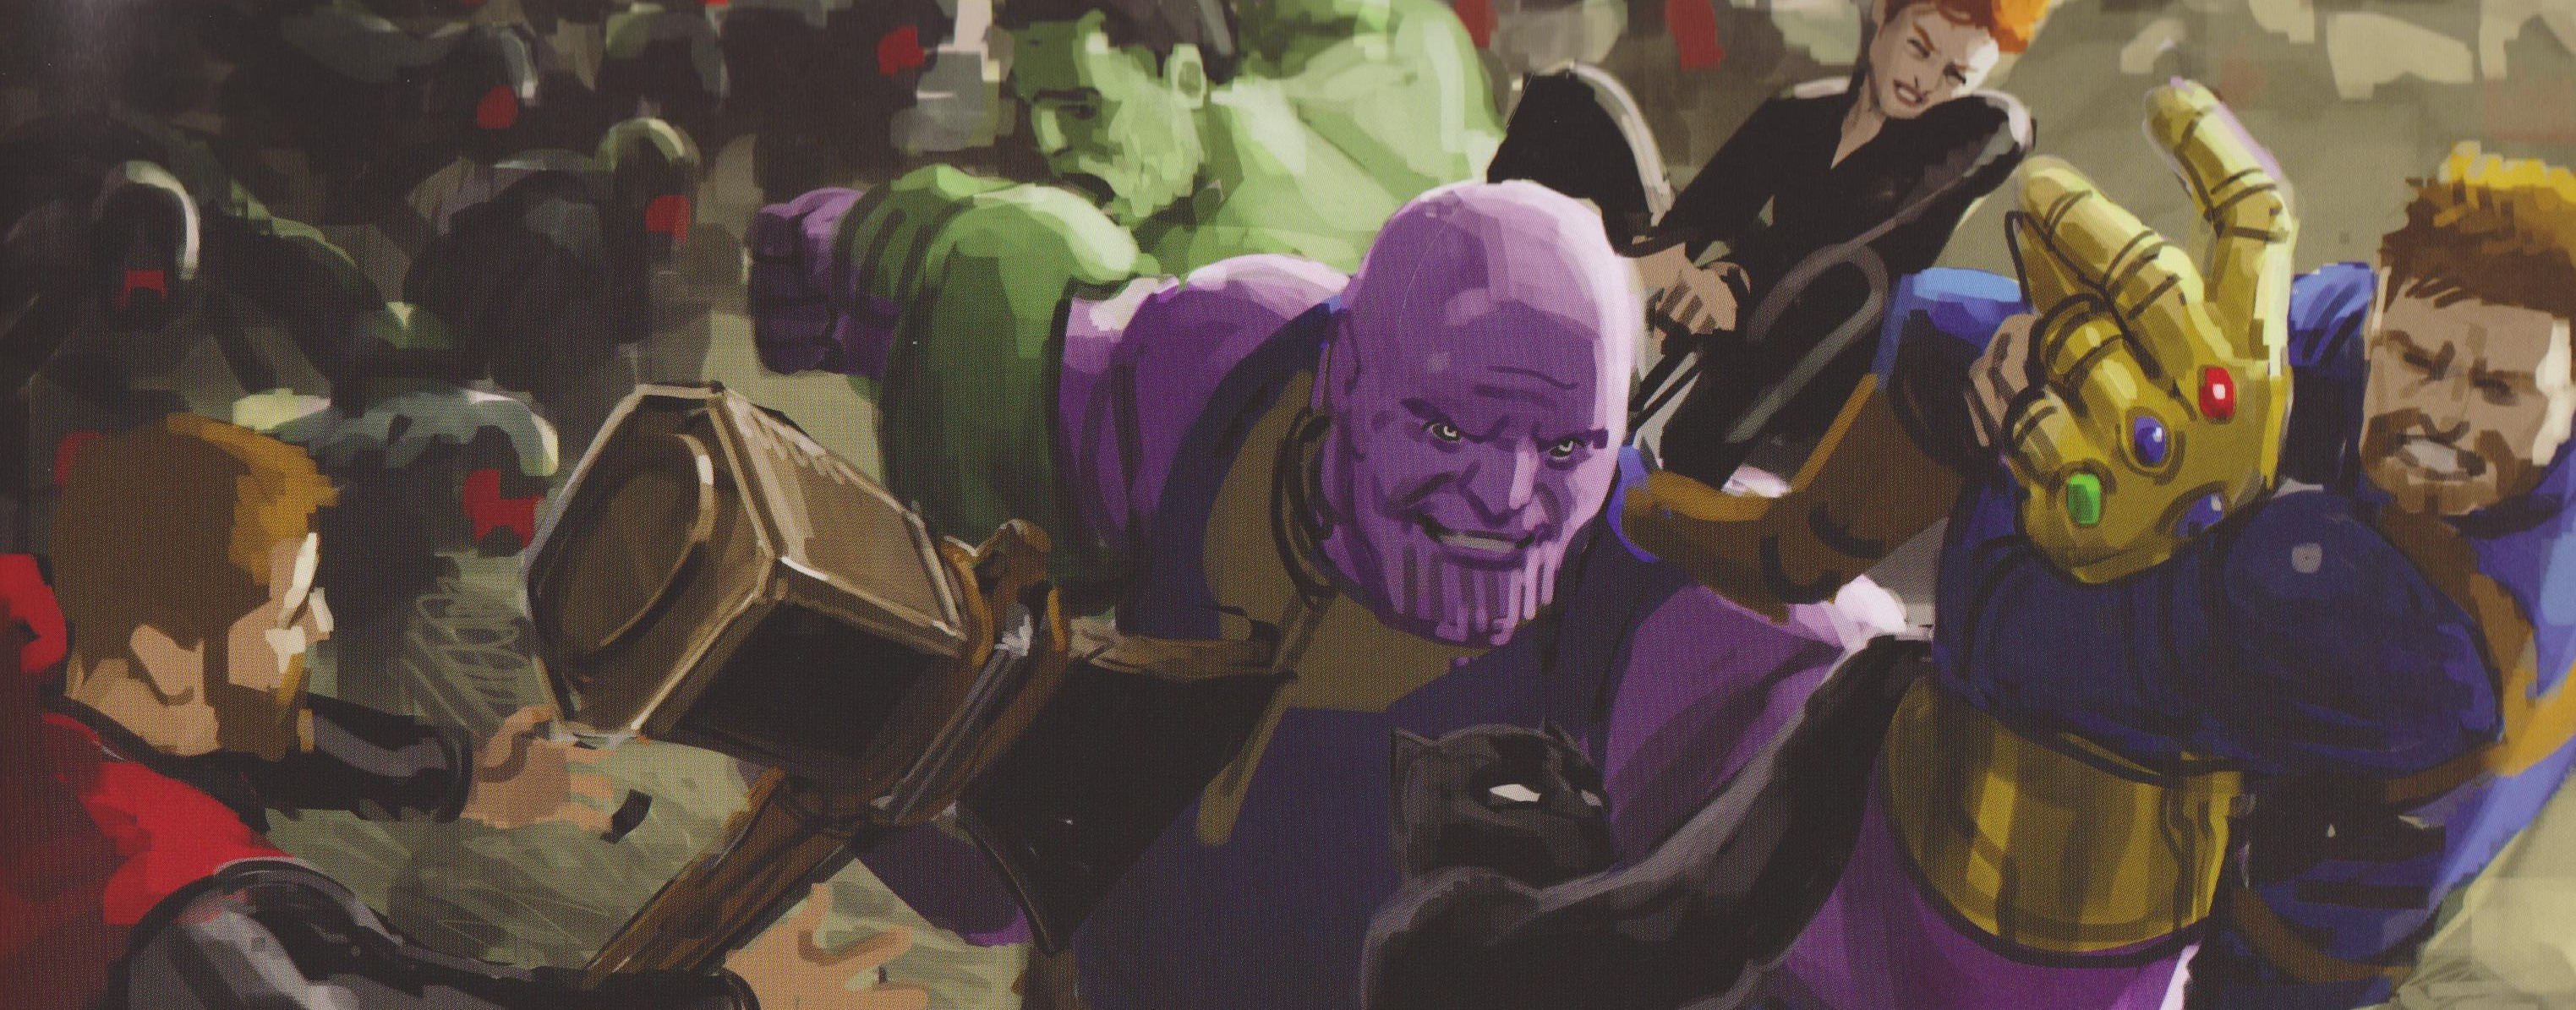 AVENGERS: INFINITY WAR Hi-Res Concept Art Features An